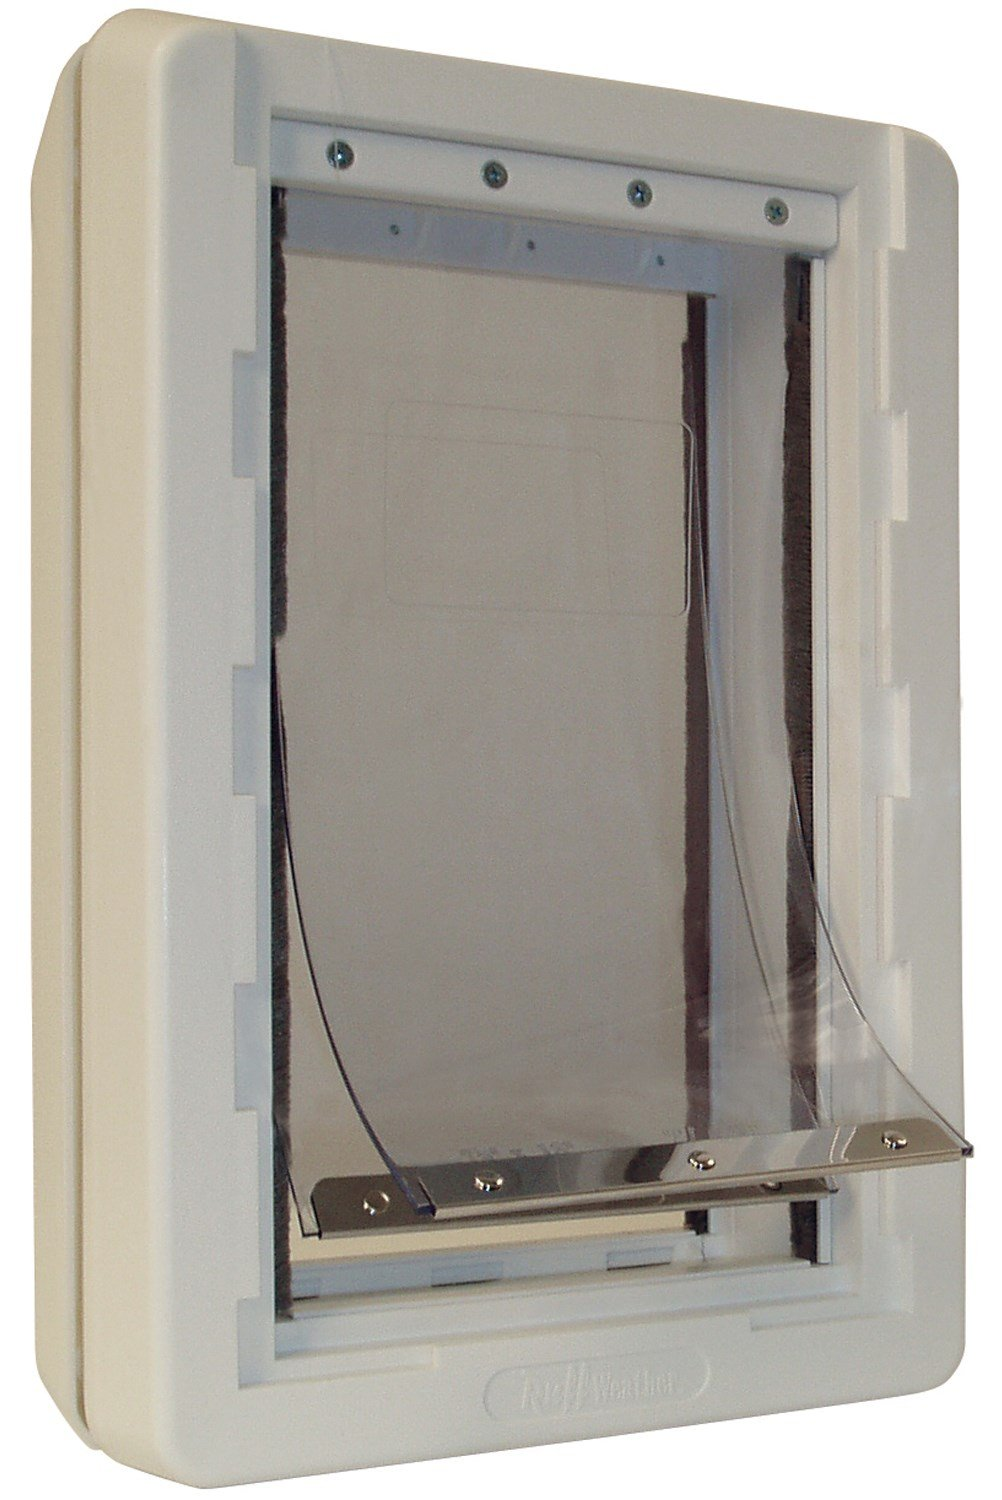 Ideal Pet Products Ruff-Weather Pet Door with Telescoping Frame, Medium, 7.25'' x 13'' Flap Size by Ideal Pet Products (Image #1)